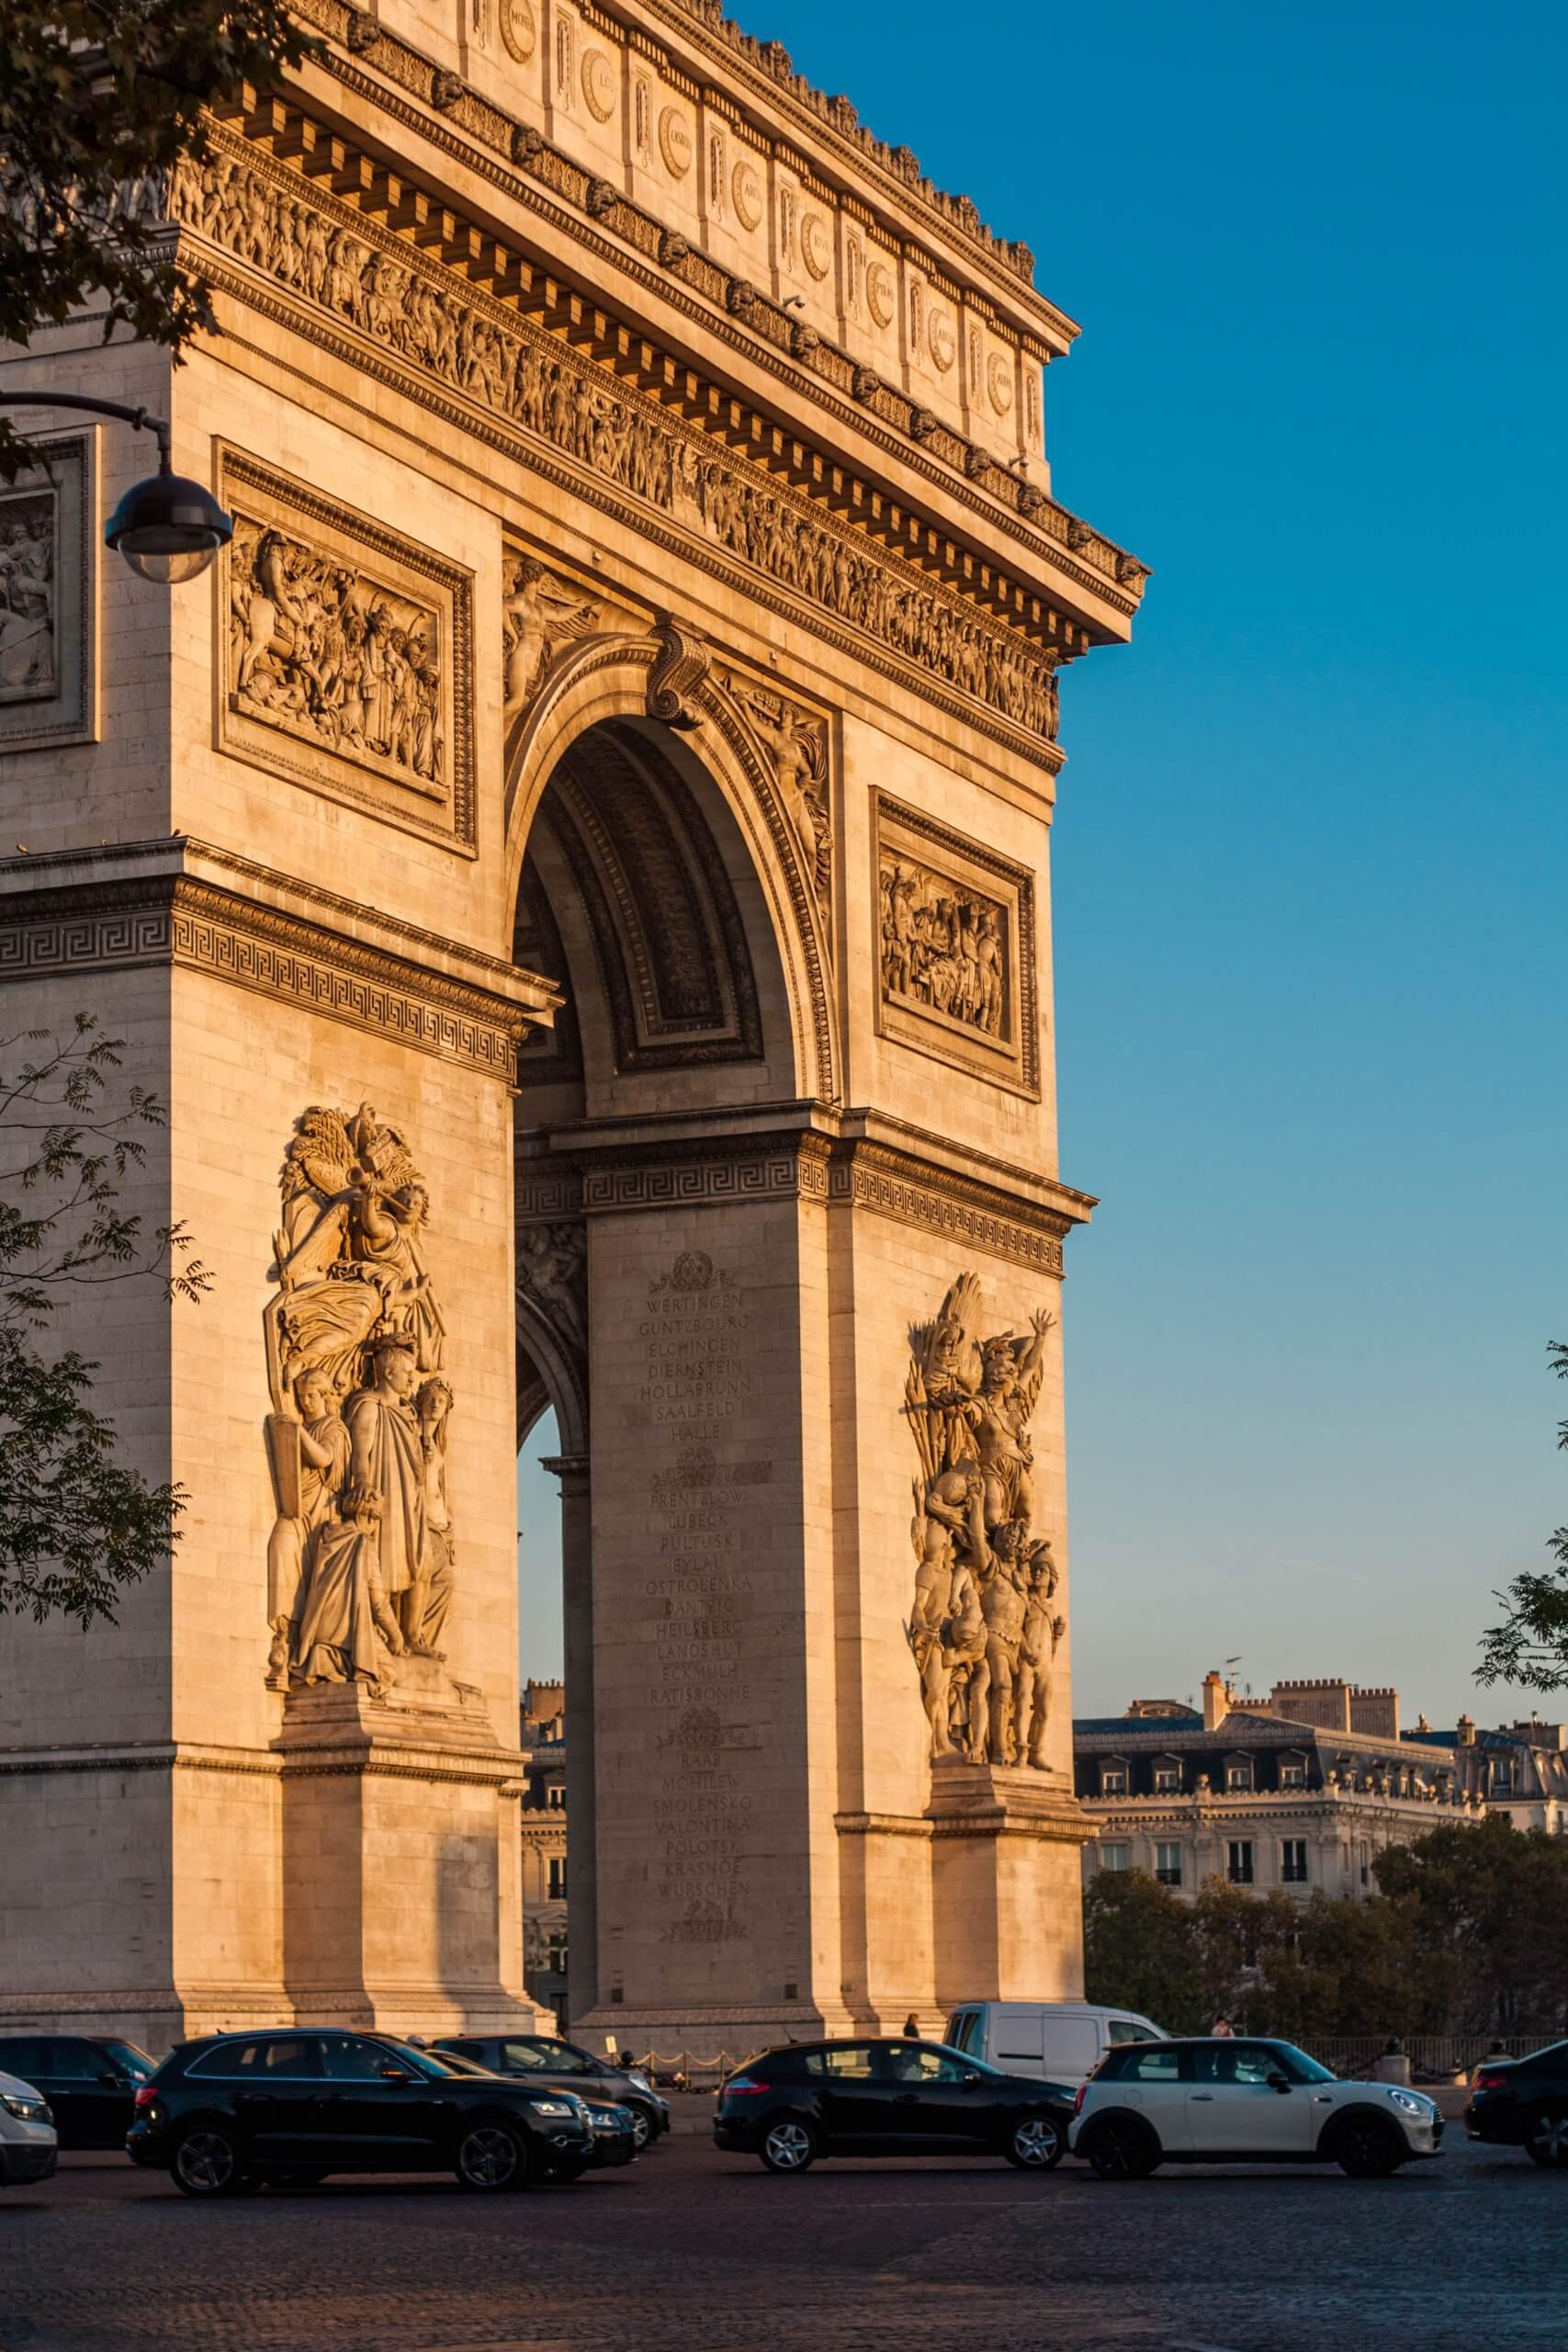 France – Insurers to Pay Part of the Covid-19 Bill